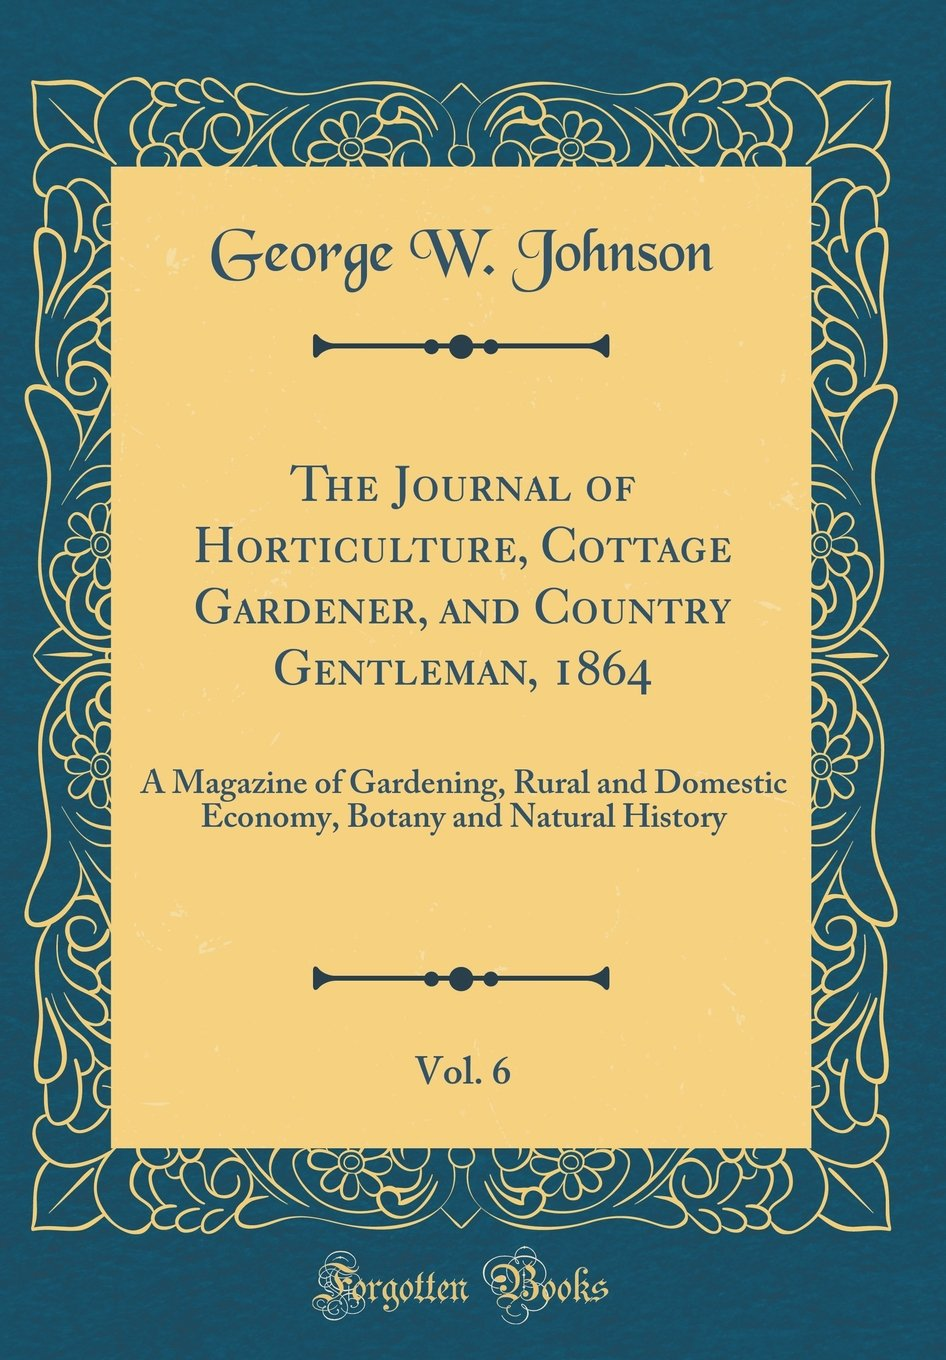 Download The Journal of Horticulture, Cottage Gardener, and Country Gentleman, 1864, Vol. 6: A Magazine of Gardening, Rural and Domestic Economy, Botany and Natural History (Classic Reprint) ebook